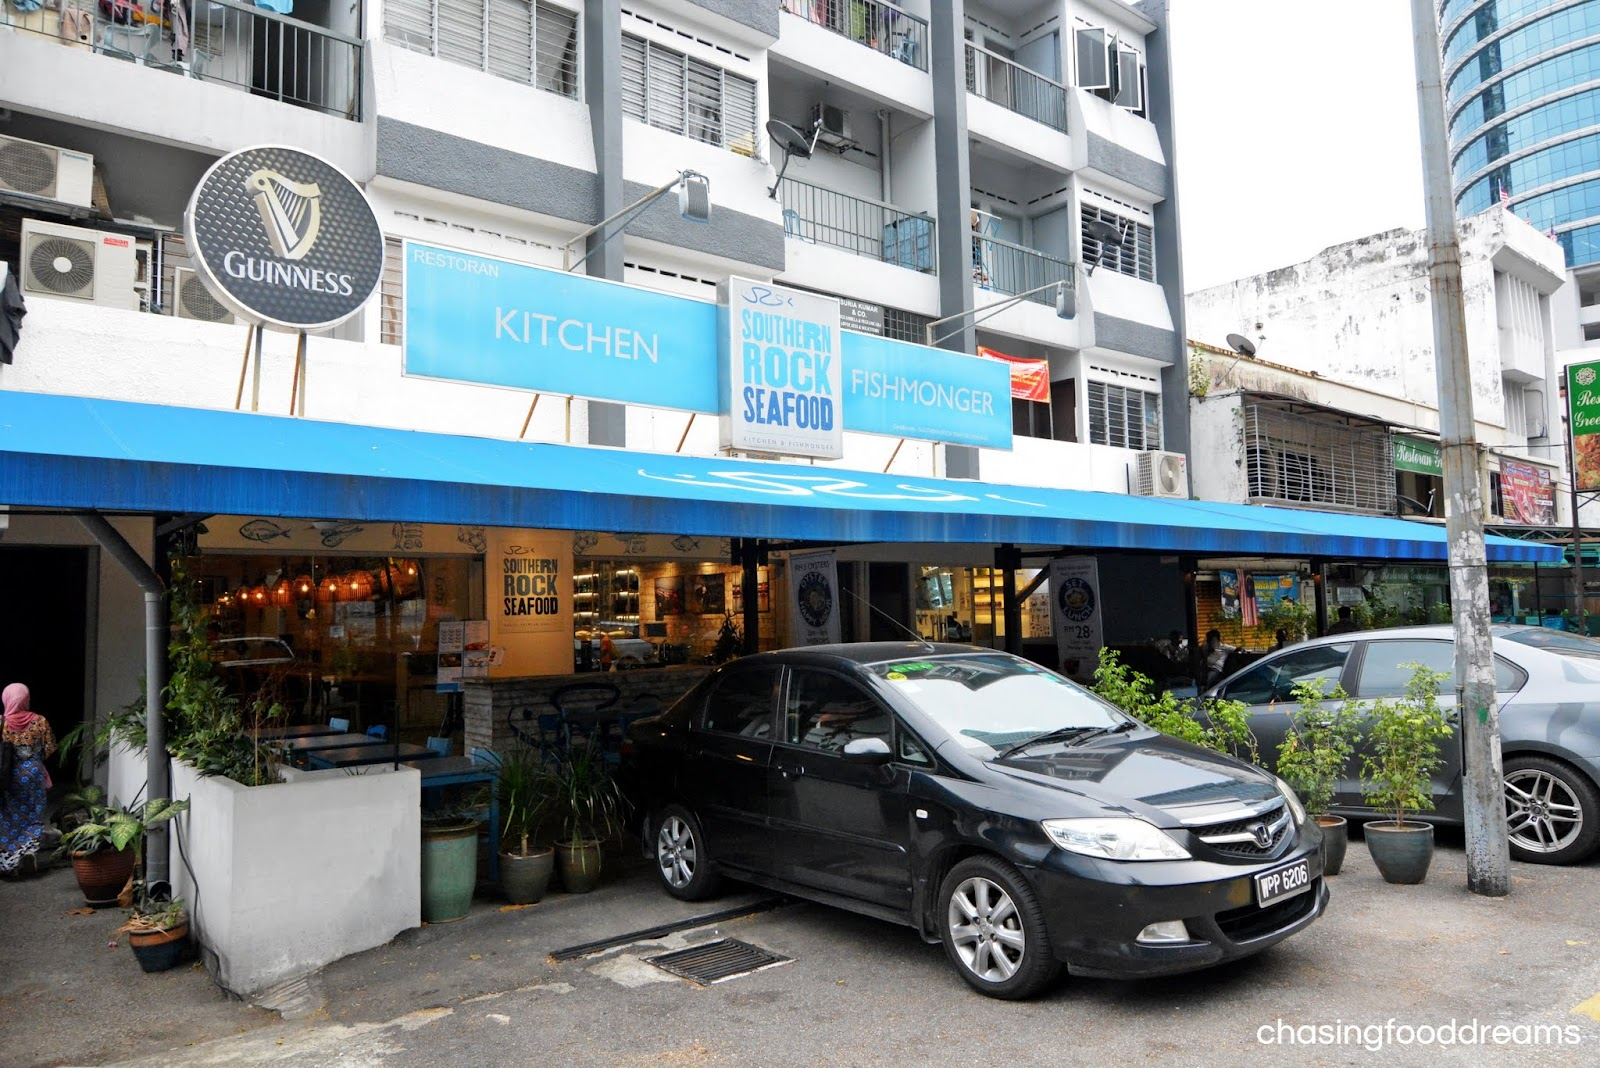 CHASING FOOD DREAMS: Southern Rock Seafood, Bangsar